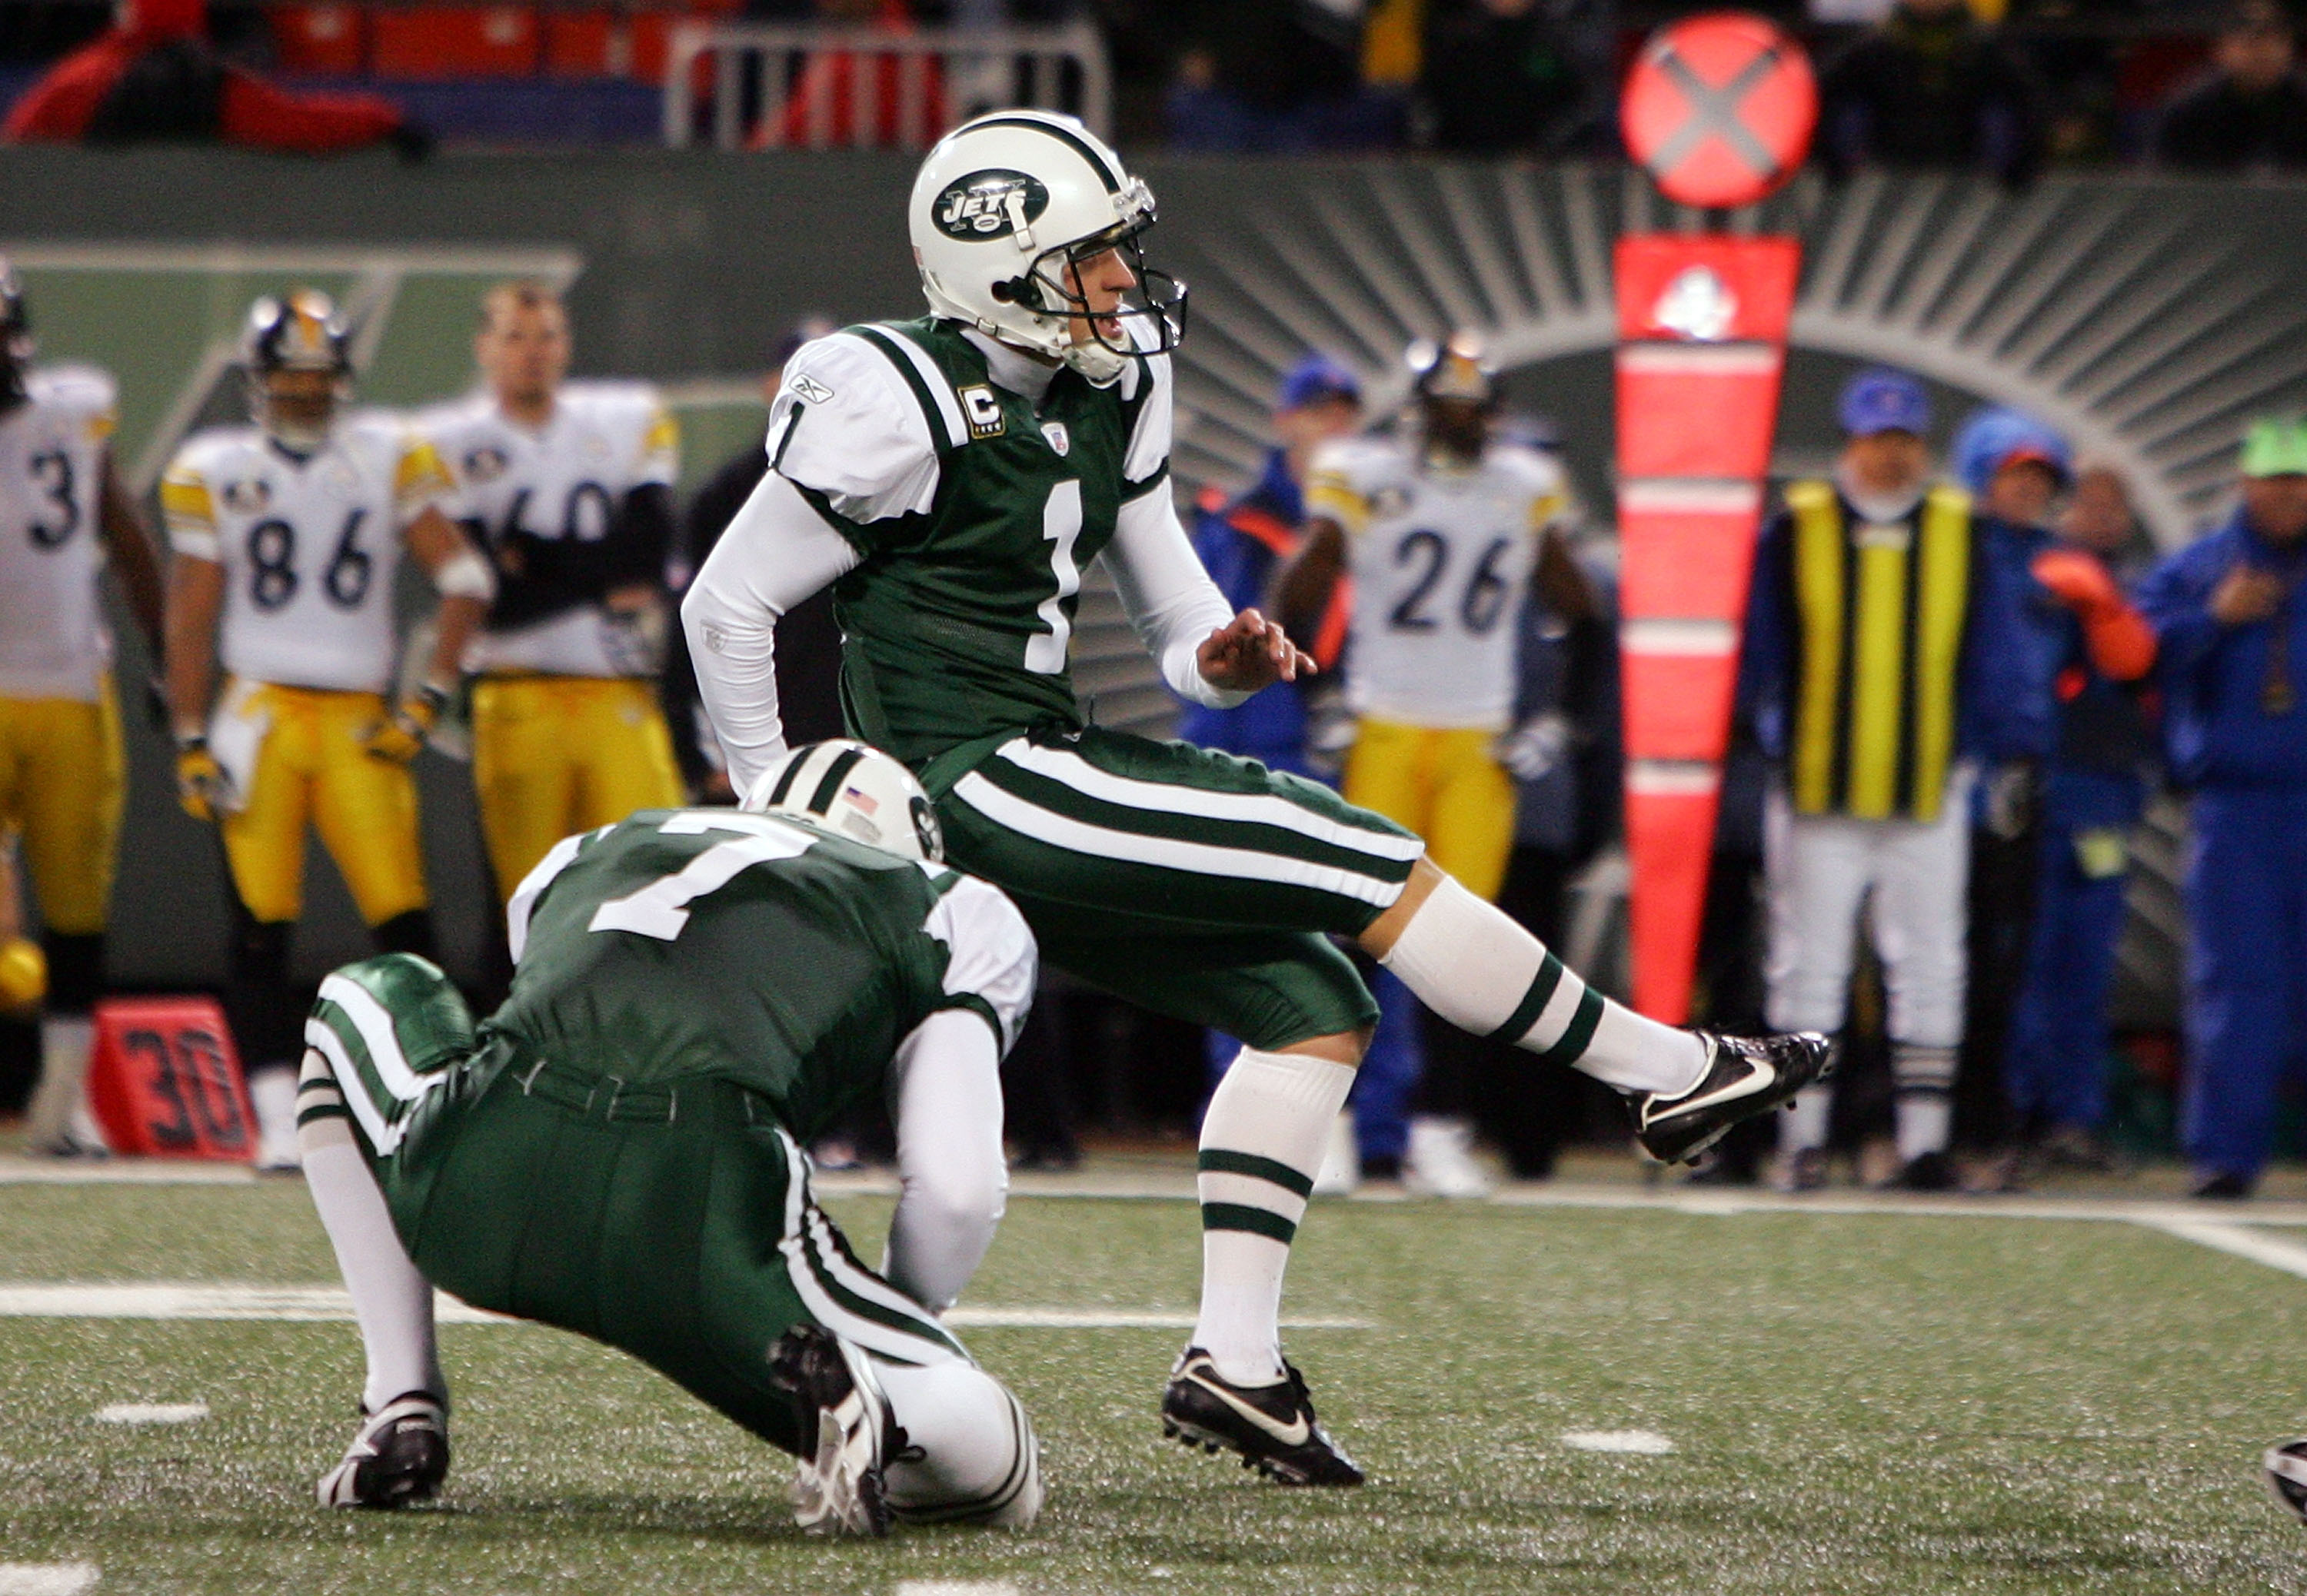 EAST RUTHERFORD, NJ - NOVEMBER 18:  Mike Nugent #1 of the New York Jets kicks the game-winning field goal against the Pittsburgh Steelers at Giants Stadium November 18, 2007 in East Rutherford, New Jersey. The Jets defeated the Steelers 19-16 in overtime.